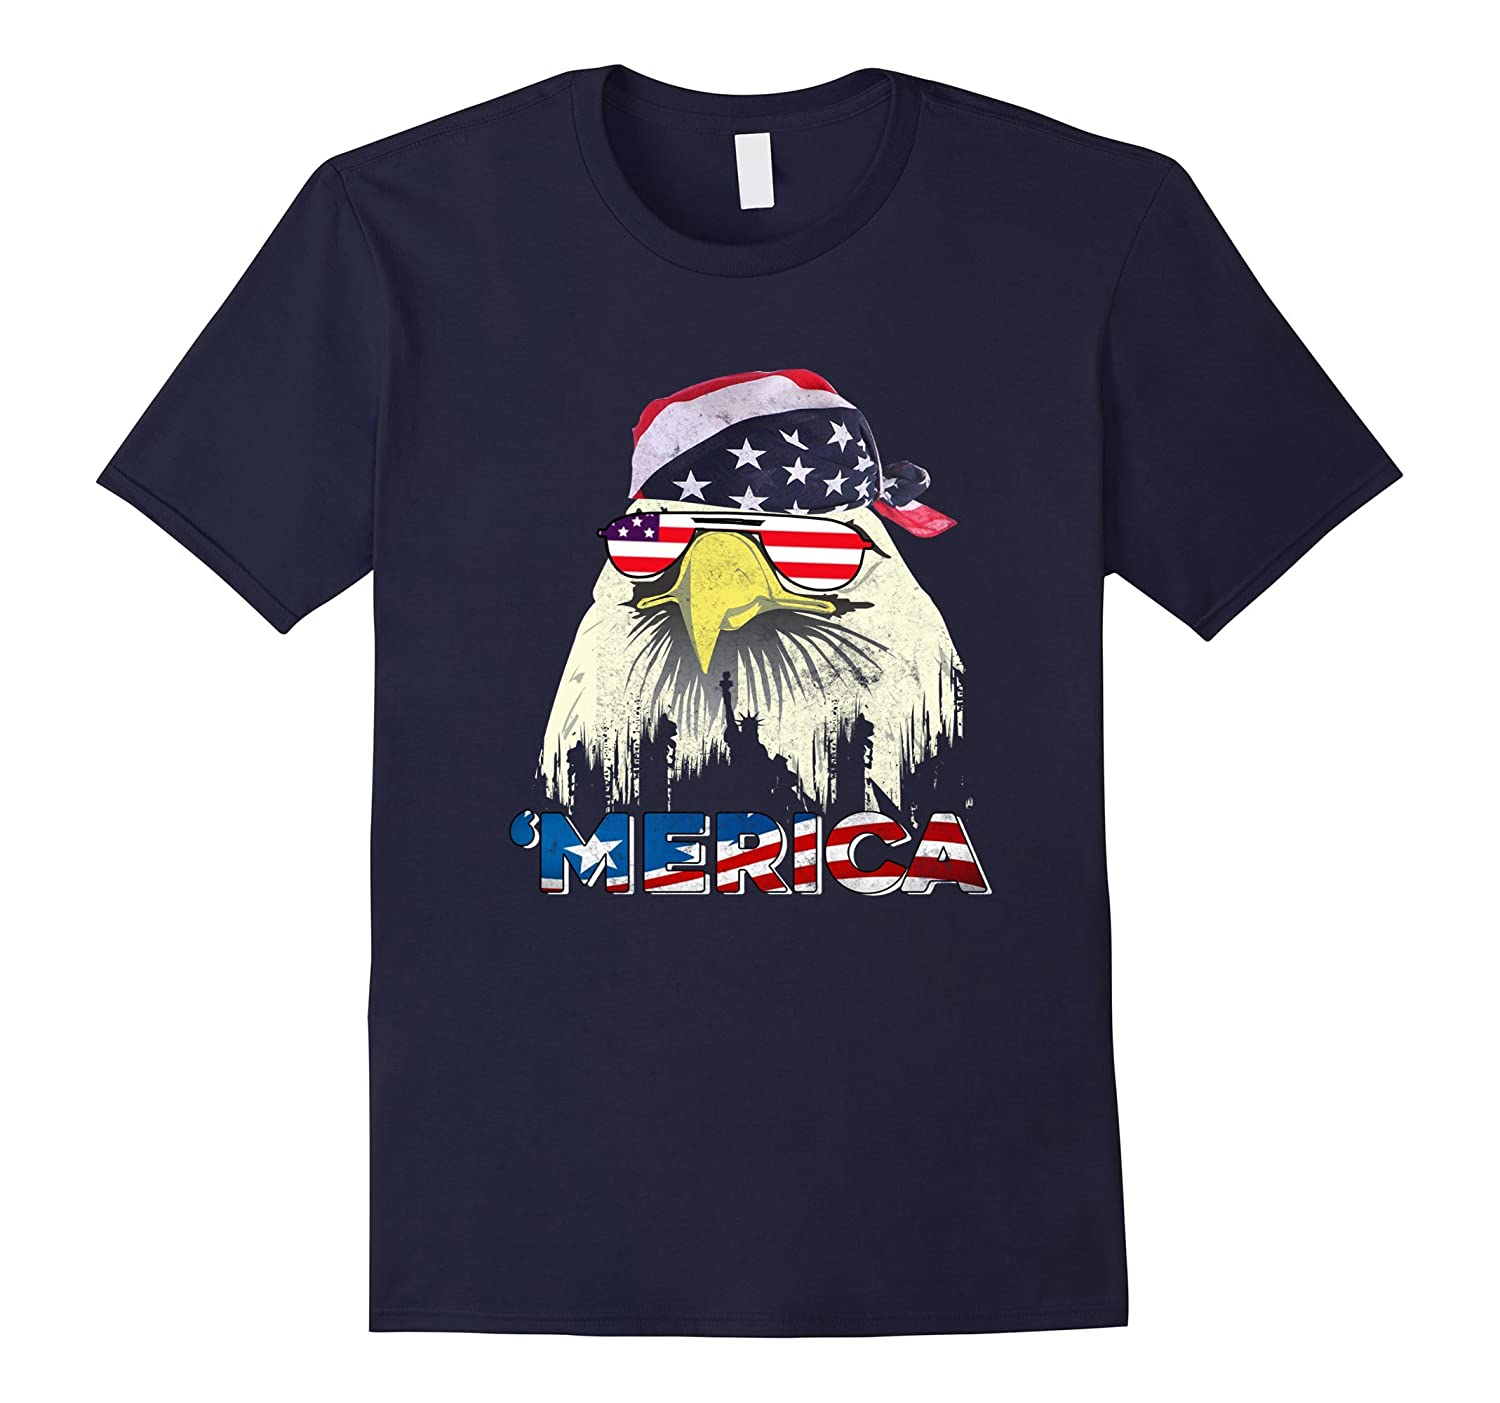 4th of july shirt - Usa pride merica mullet eagle t shirt-PL